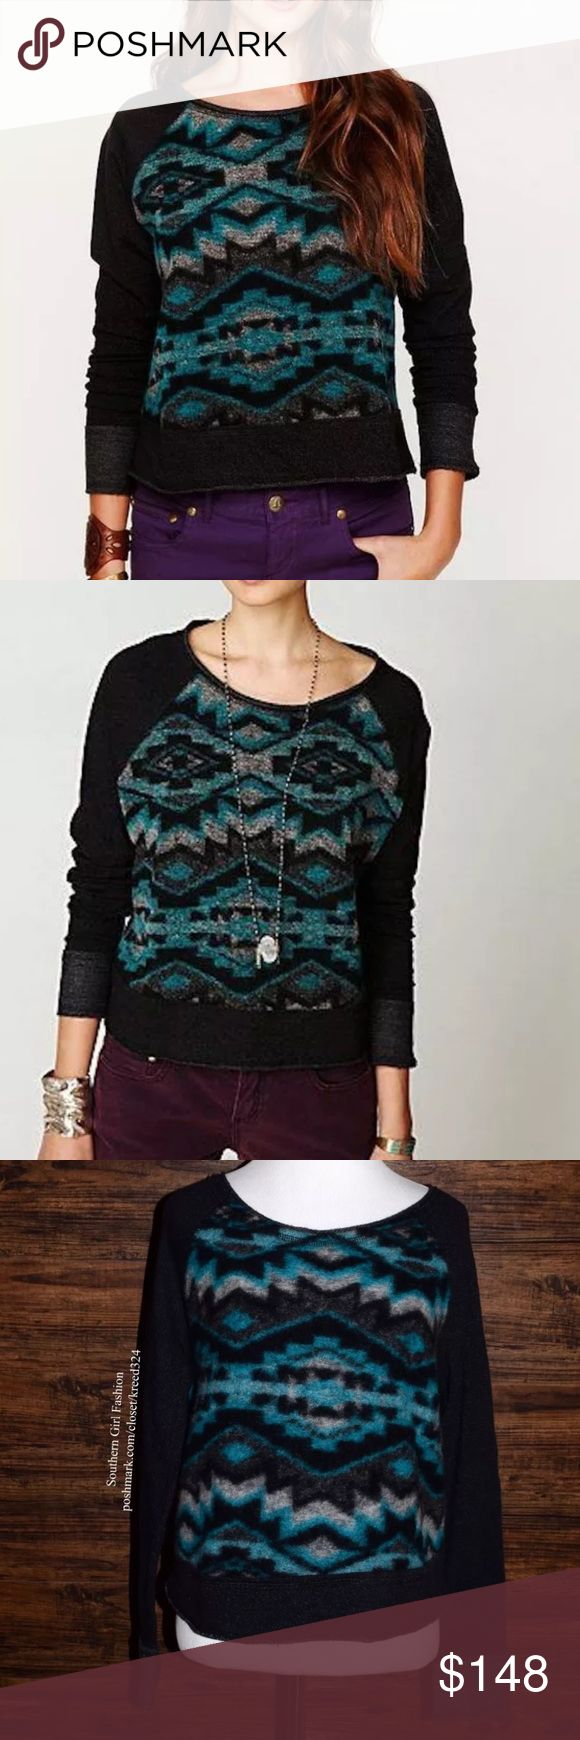 FREE PEOPLE Classic Sweater Top Bohemian Pullover Size Small. Good Condition. $148 MSRP + Tax.  • Beautiful patterned pullover featuring patchwork detailing throughout. • Intentional raw seams and fuzzy aspect. • Patched elbows with long sleeves. • By Dolan for Free People. • GUC: Fabric wear such as pilling. • No rips, stains, tears or holes. • Wool, Polyester, Rayon, Lycra. • Made in the USA.   {Southern Girl Fashion - Closet Policy}   ✔️ Same-Business-Day Shipping (10am CT). ✔️ Price…